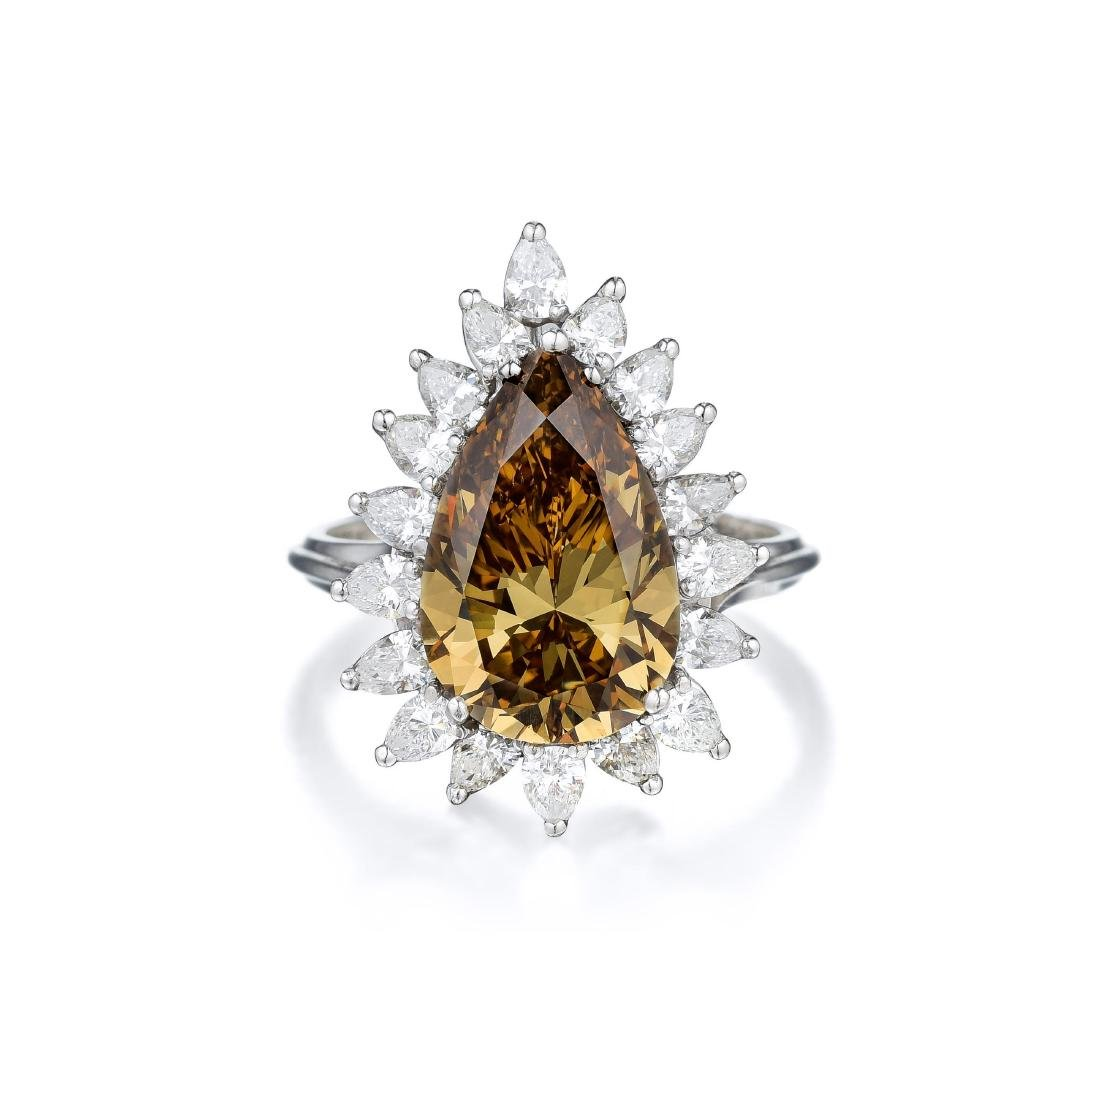 A 6.95-Carat Fancy Deep Brown-Yellow Diamond Platinum